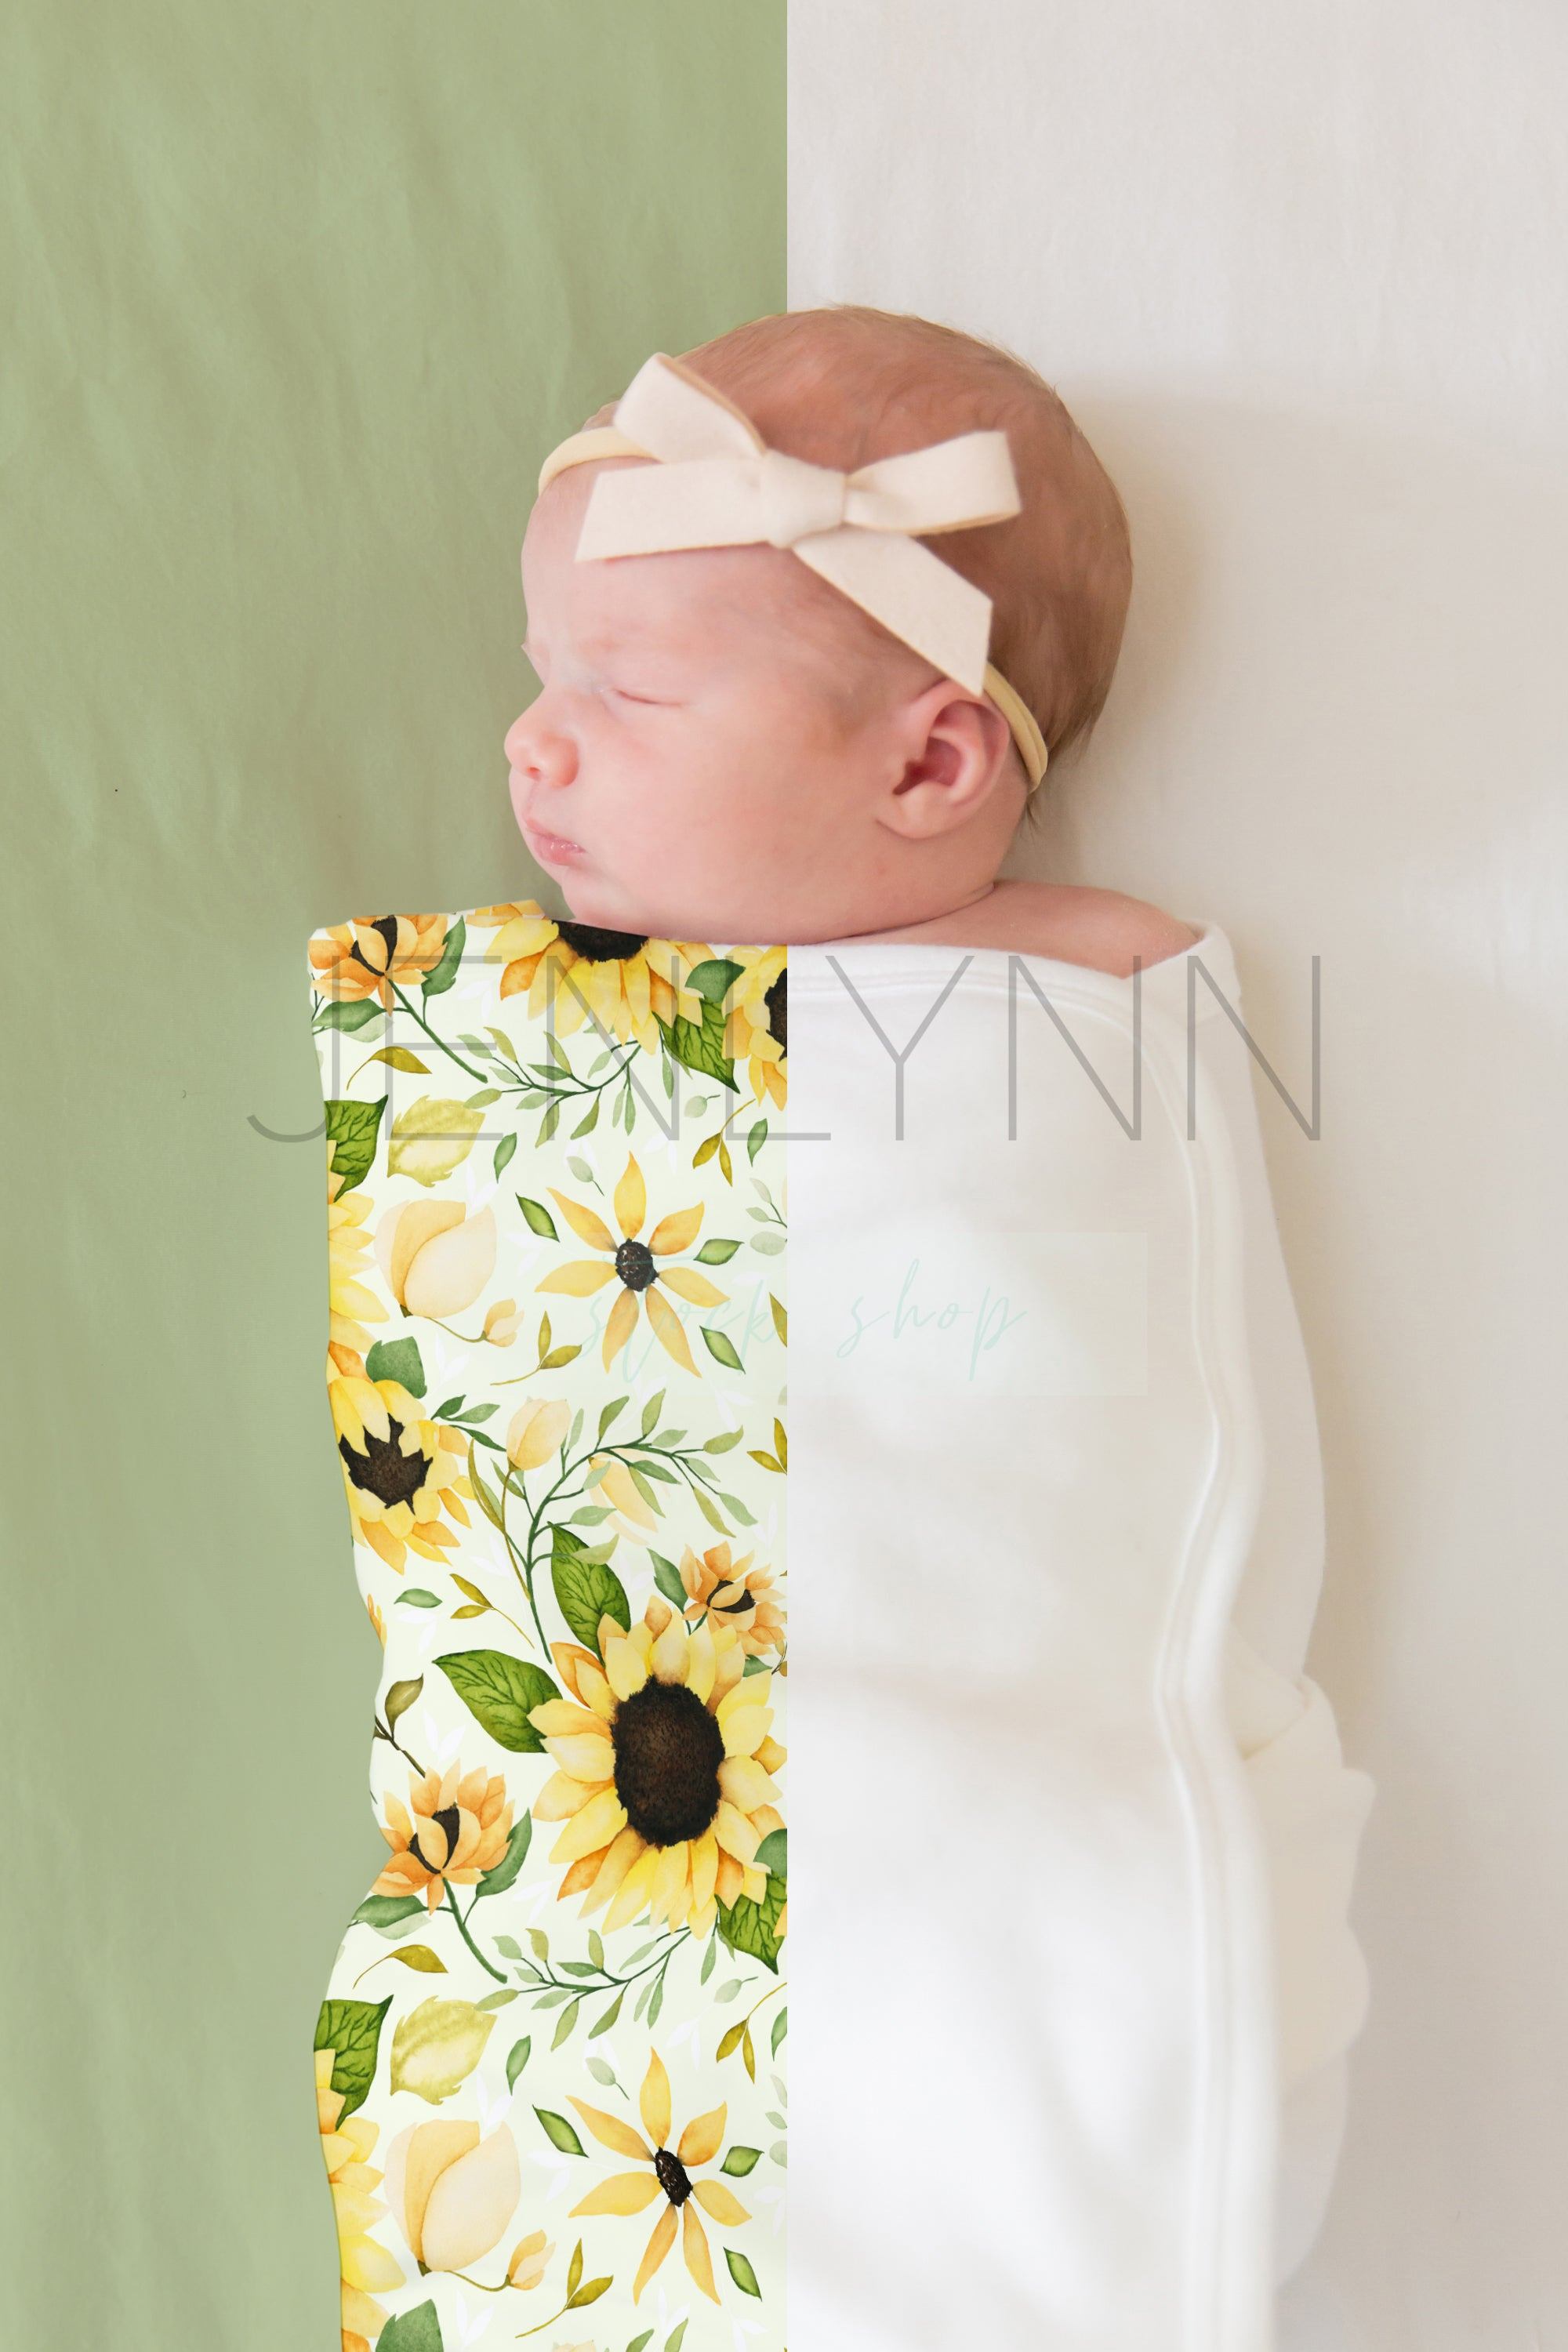 Jersey Baby Blanket Mockup #1 PSD